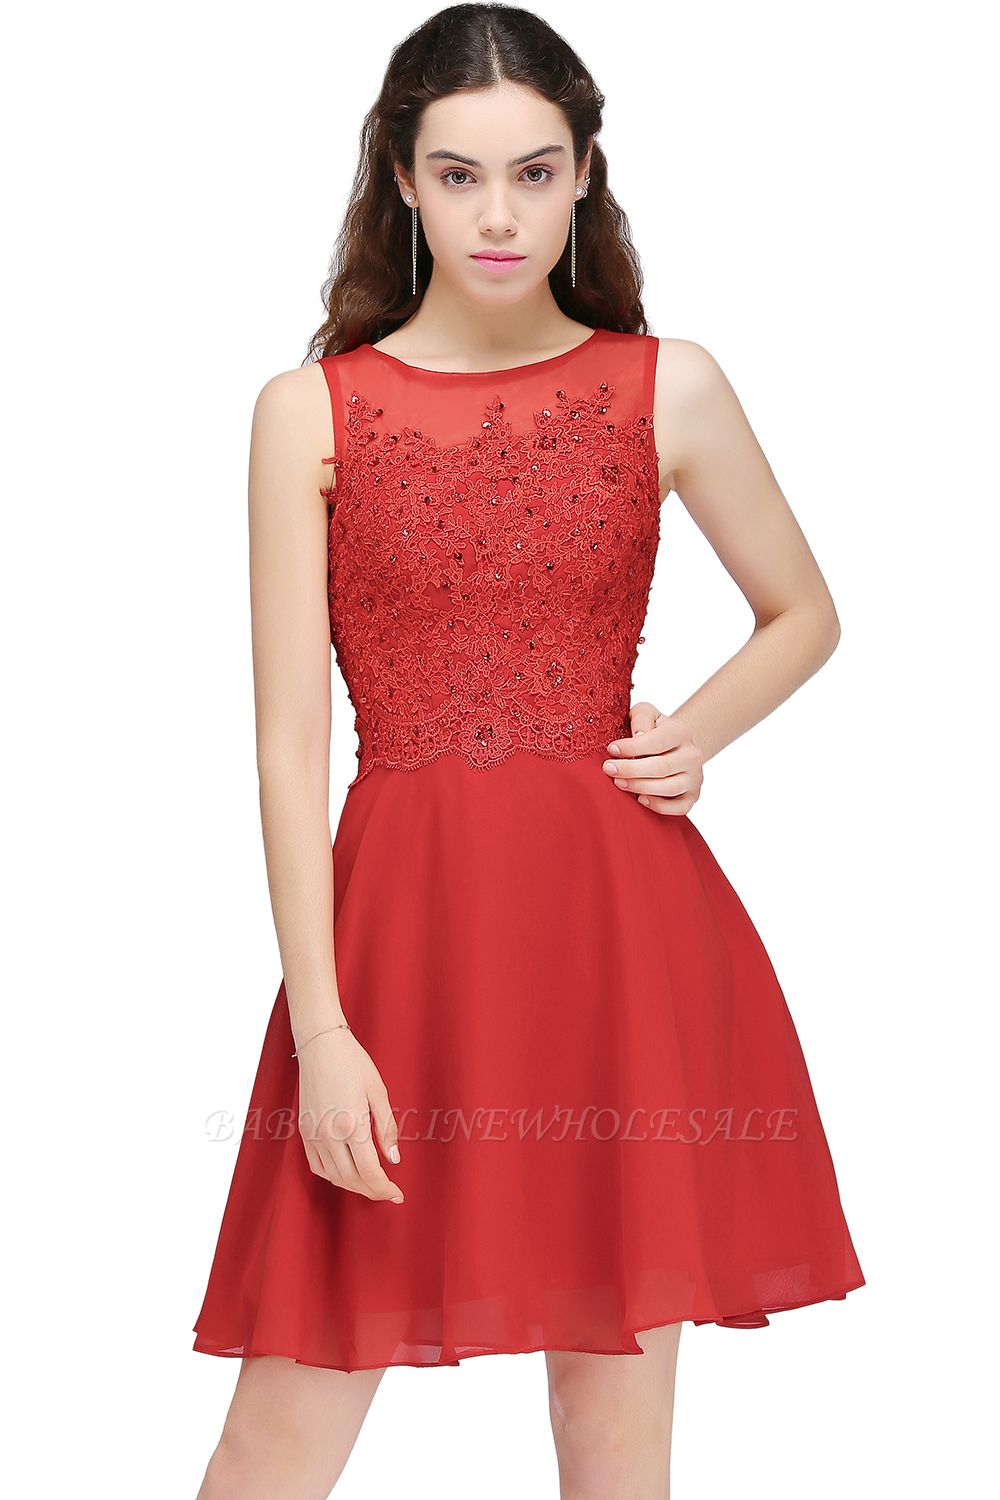 CASEY | A-line Short Chiffon Red Homecoming Dresses with Lace Appliques